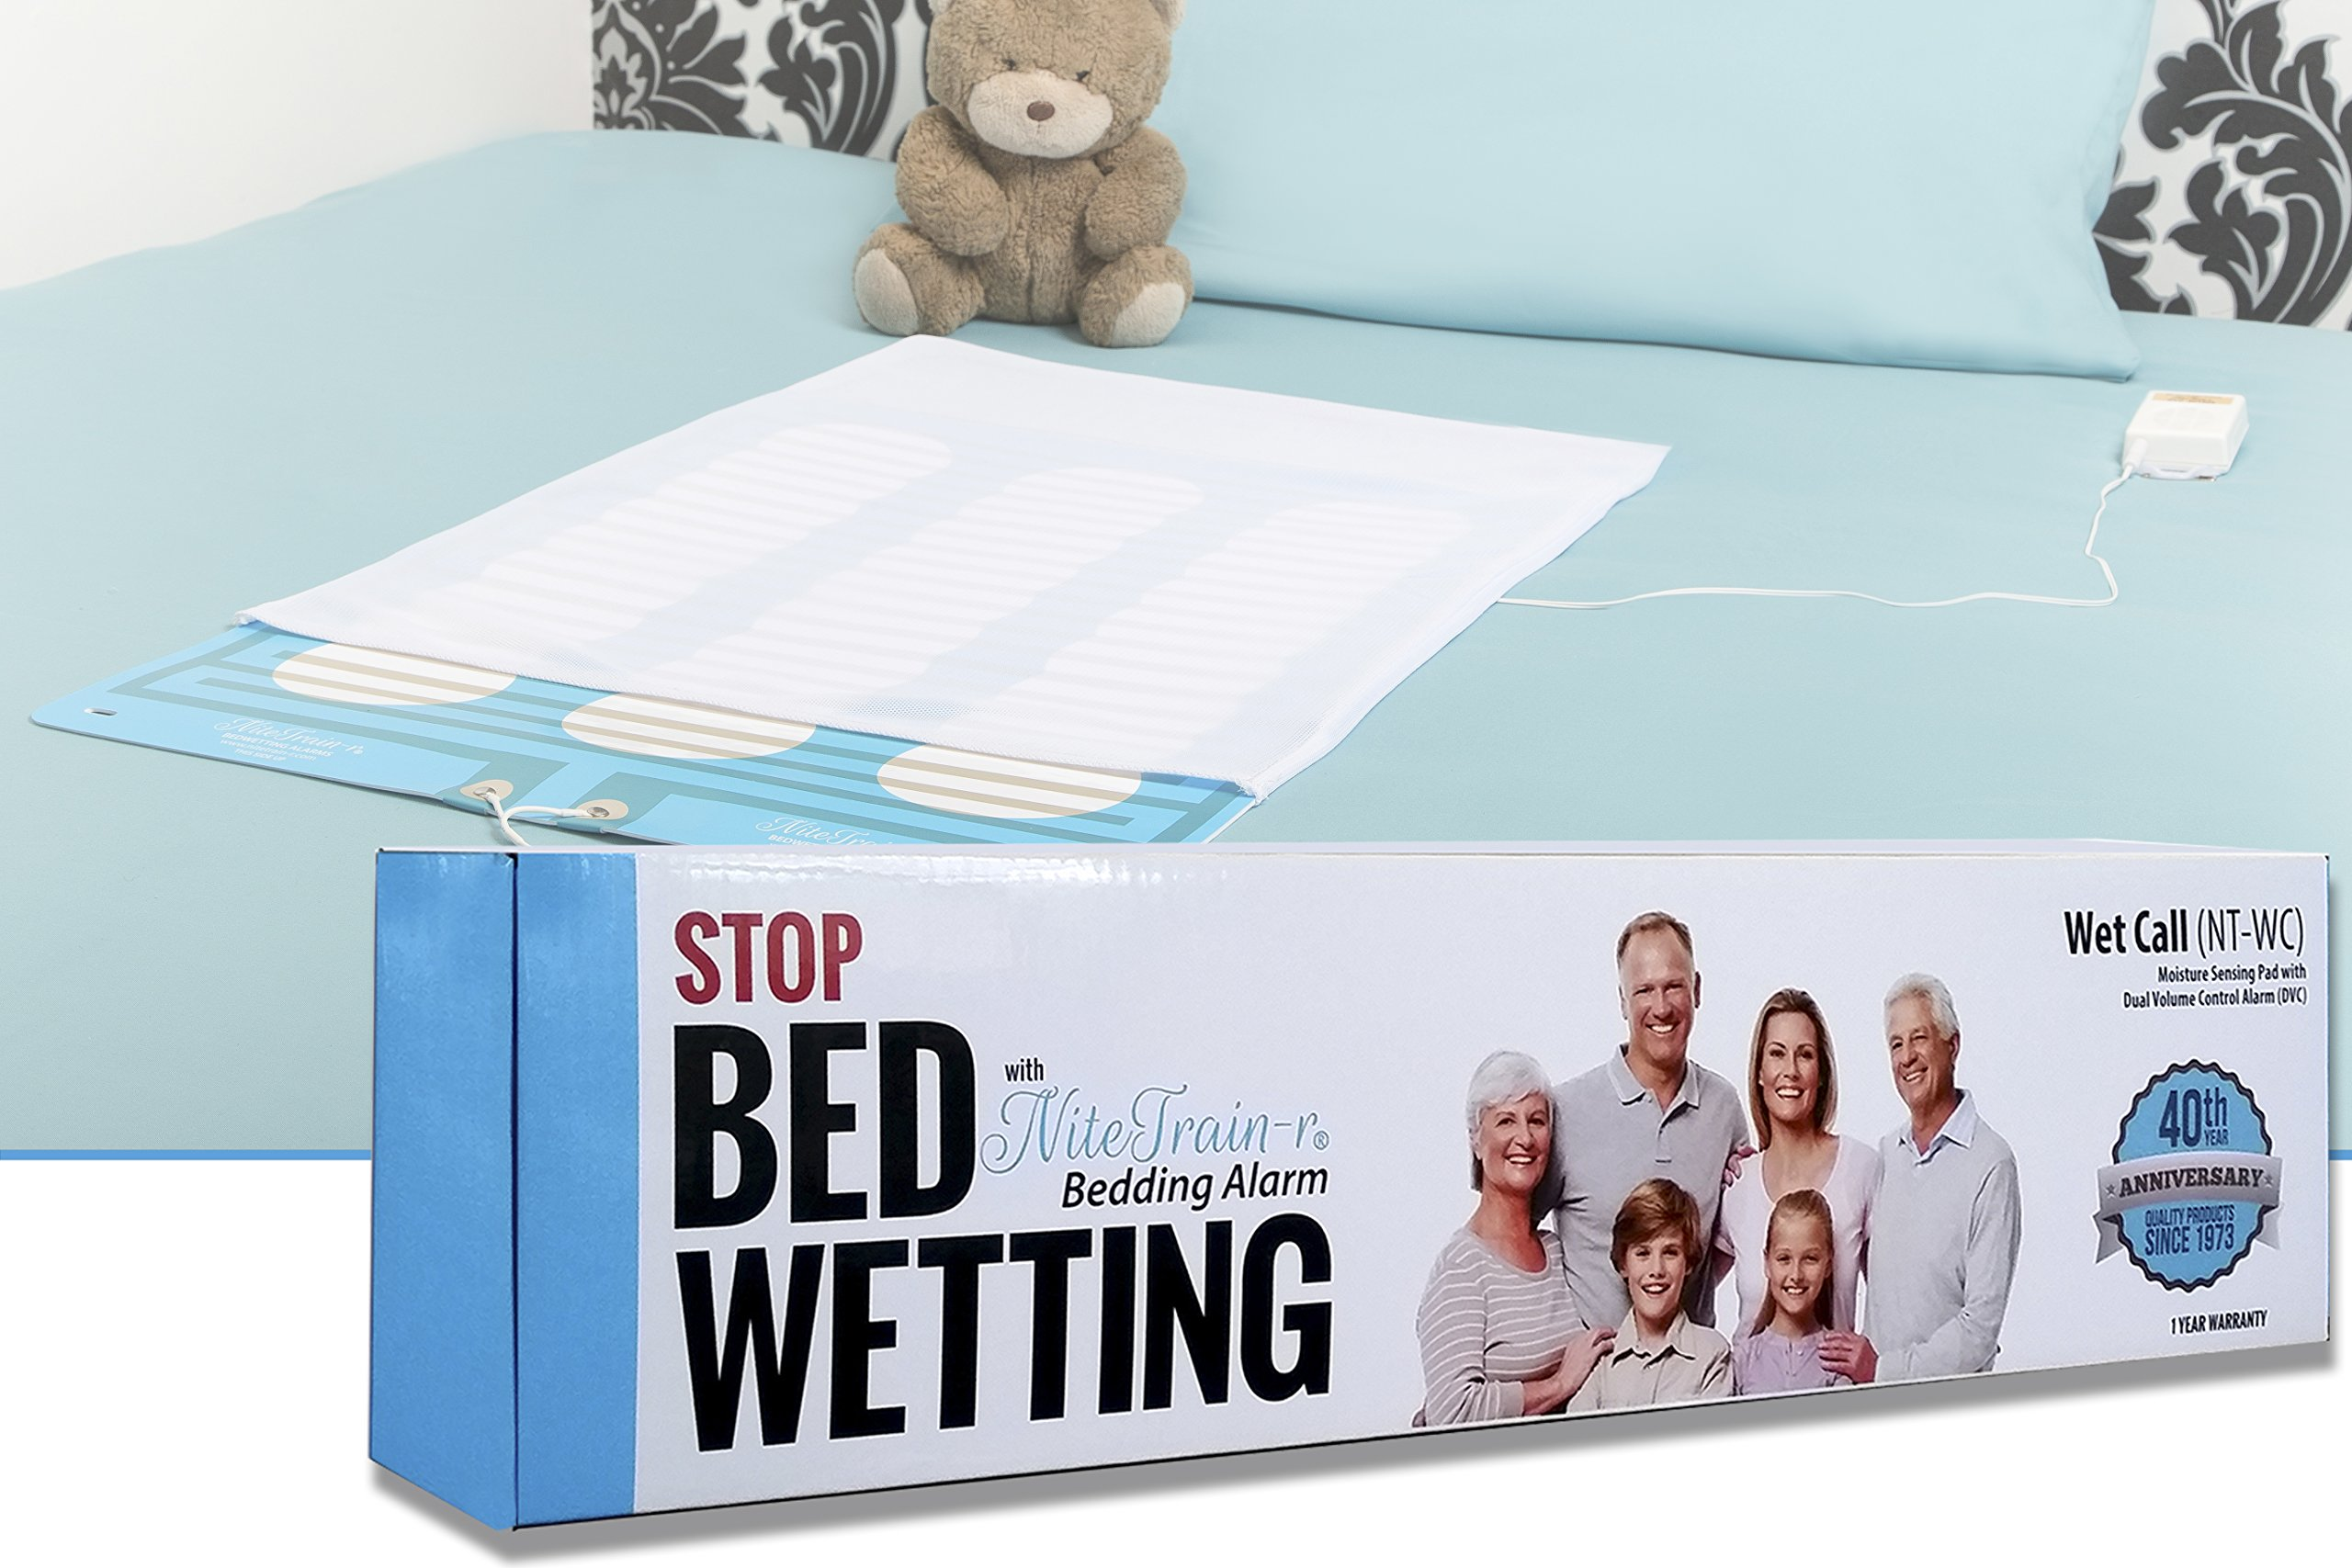 Wet Call Bed Pad Bedwetting Alarm by Nite Train-r